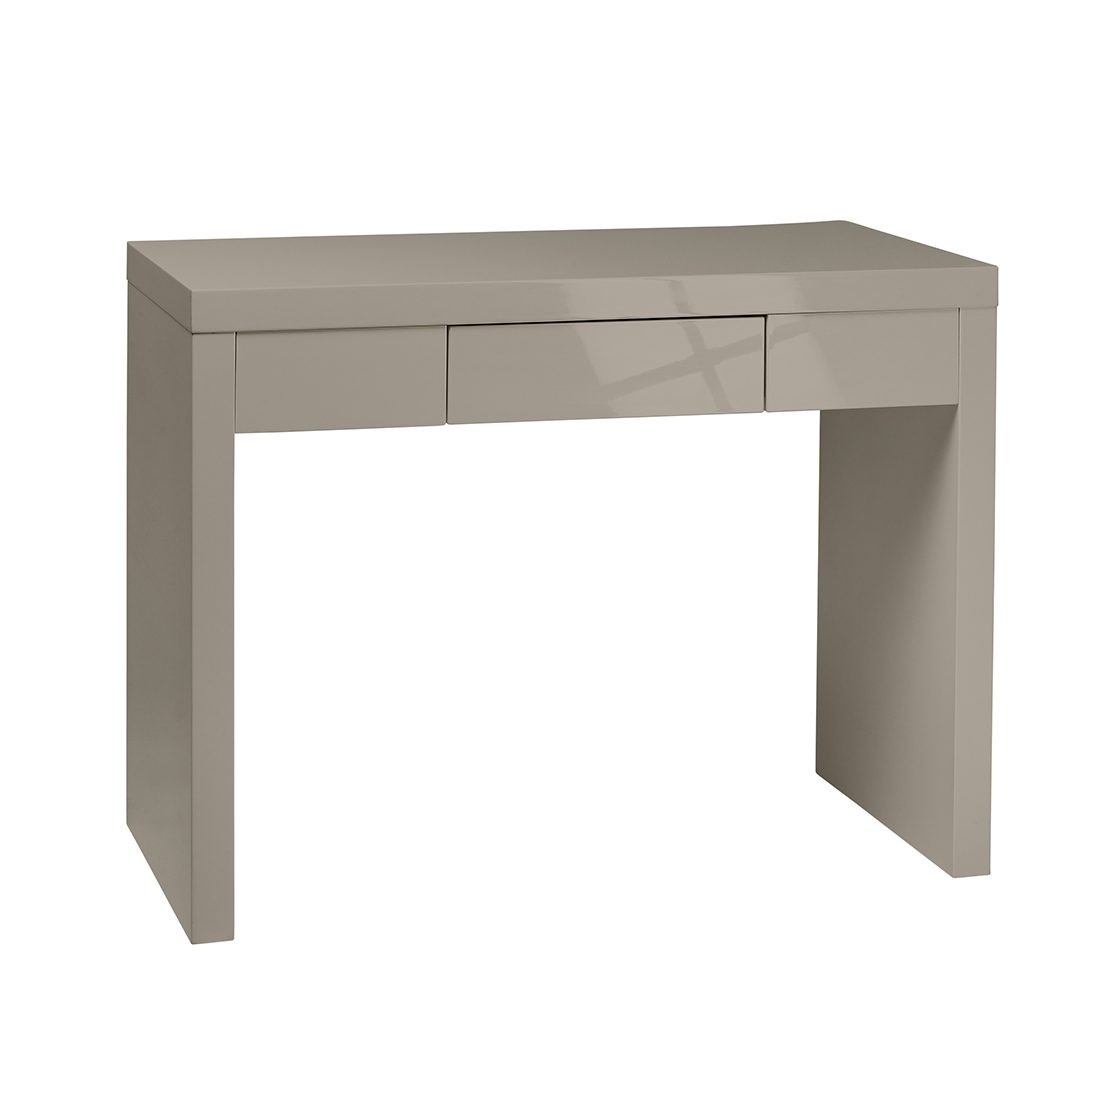 Manny Console Table Stone